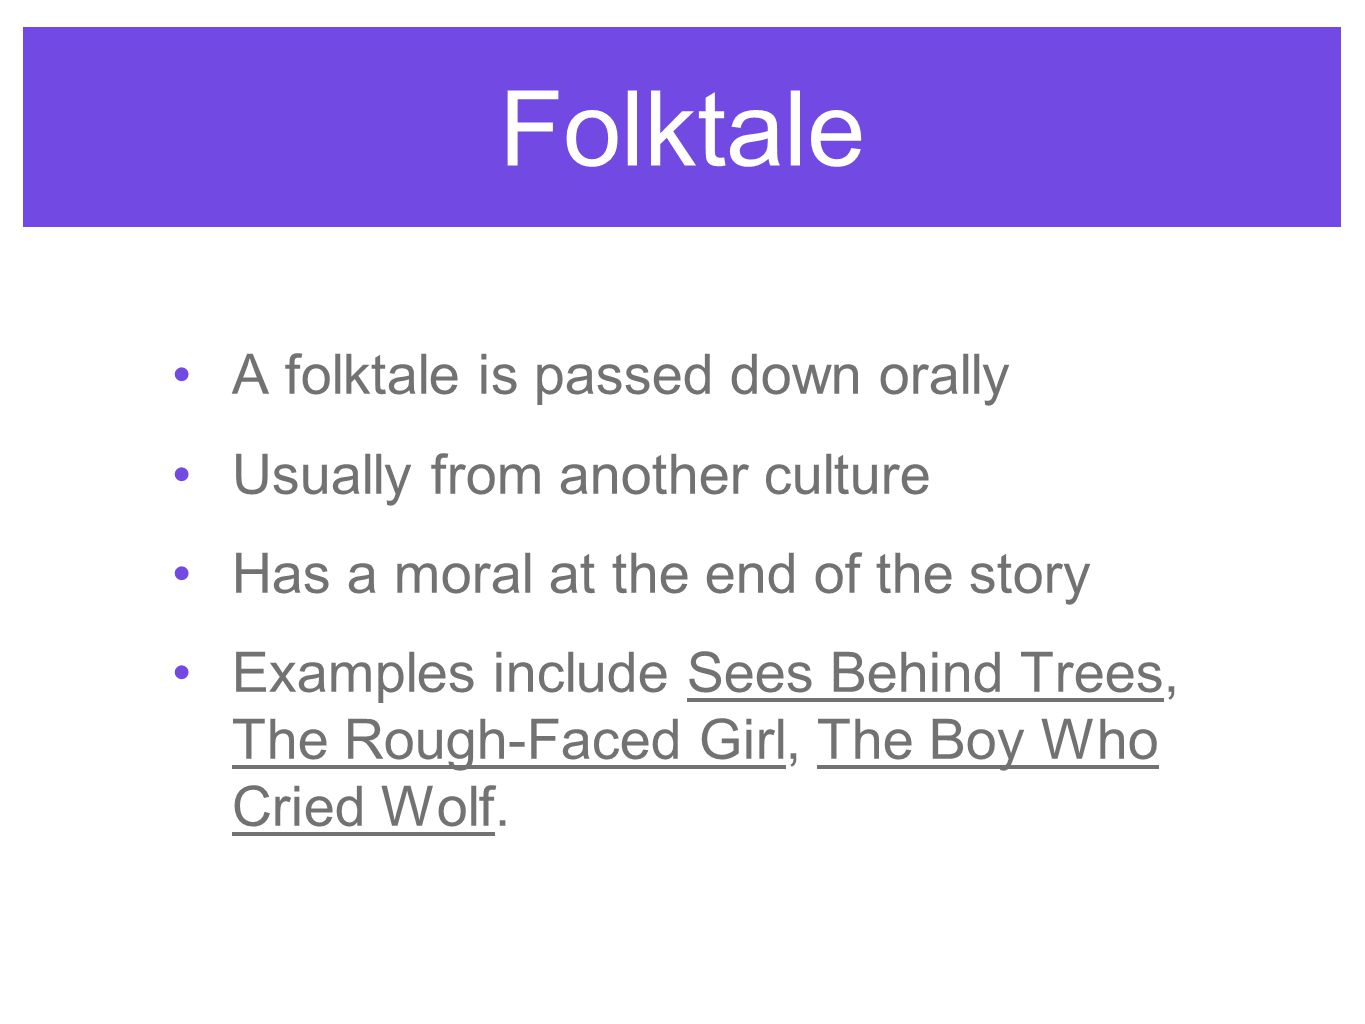 Folktale A folktale is passed down orally Usually from another culture Has a moral at the end of the story Examples include Sees Behind Trees, The Rou